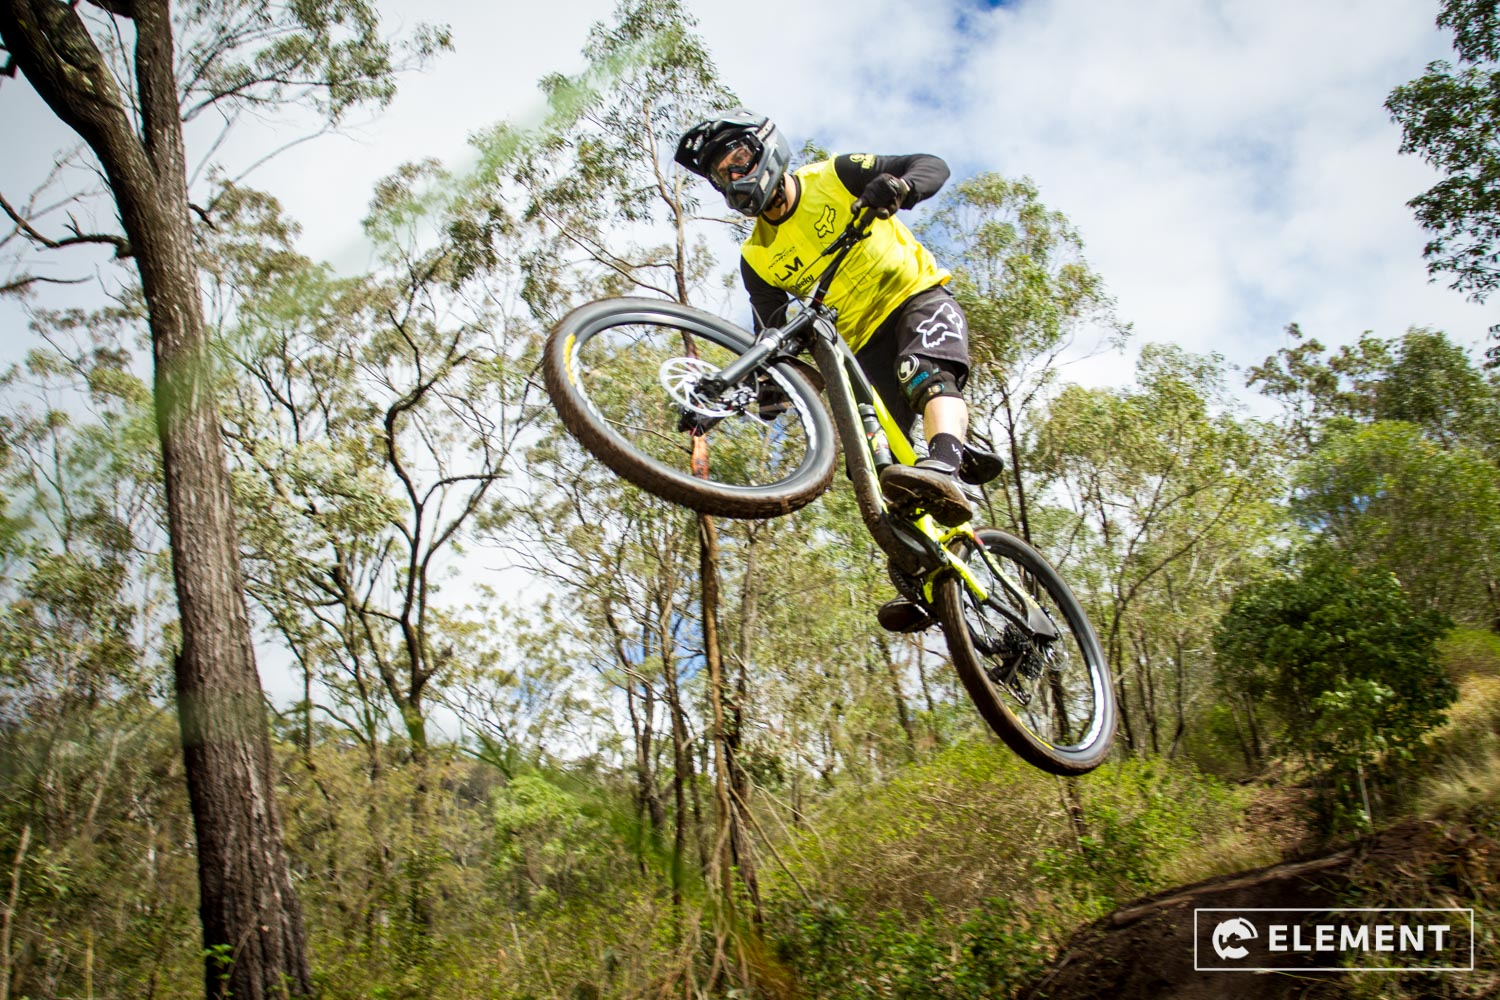 Photos from Round 5 of the SRAM Enduro Series, Toowoomba 17-7-2016. Photos by Element.